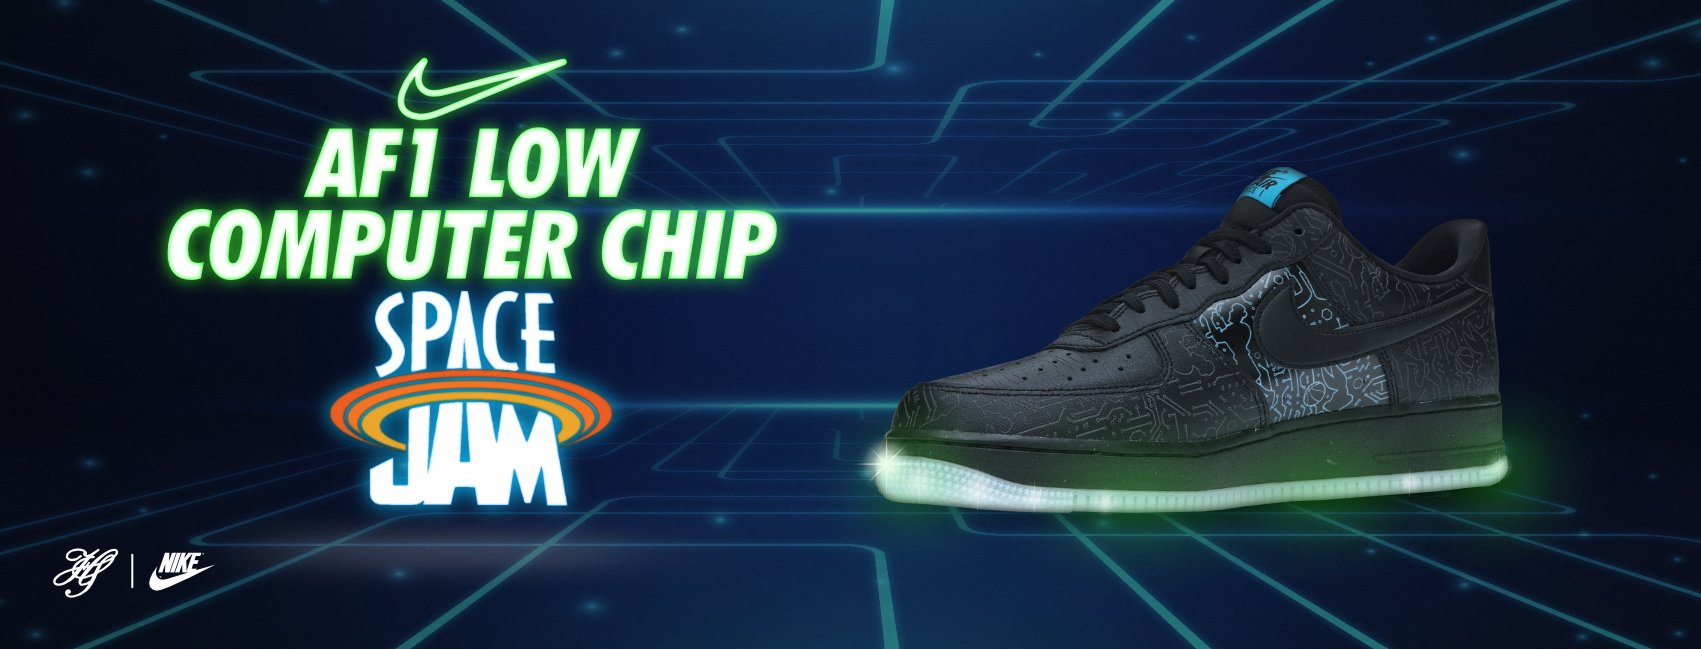 NIKE AIR FORCE 1 '07 X SPACE JAM: COMPUTER CHIP